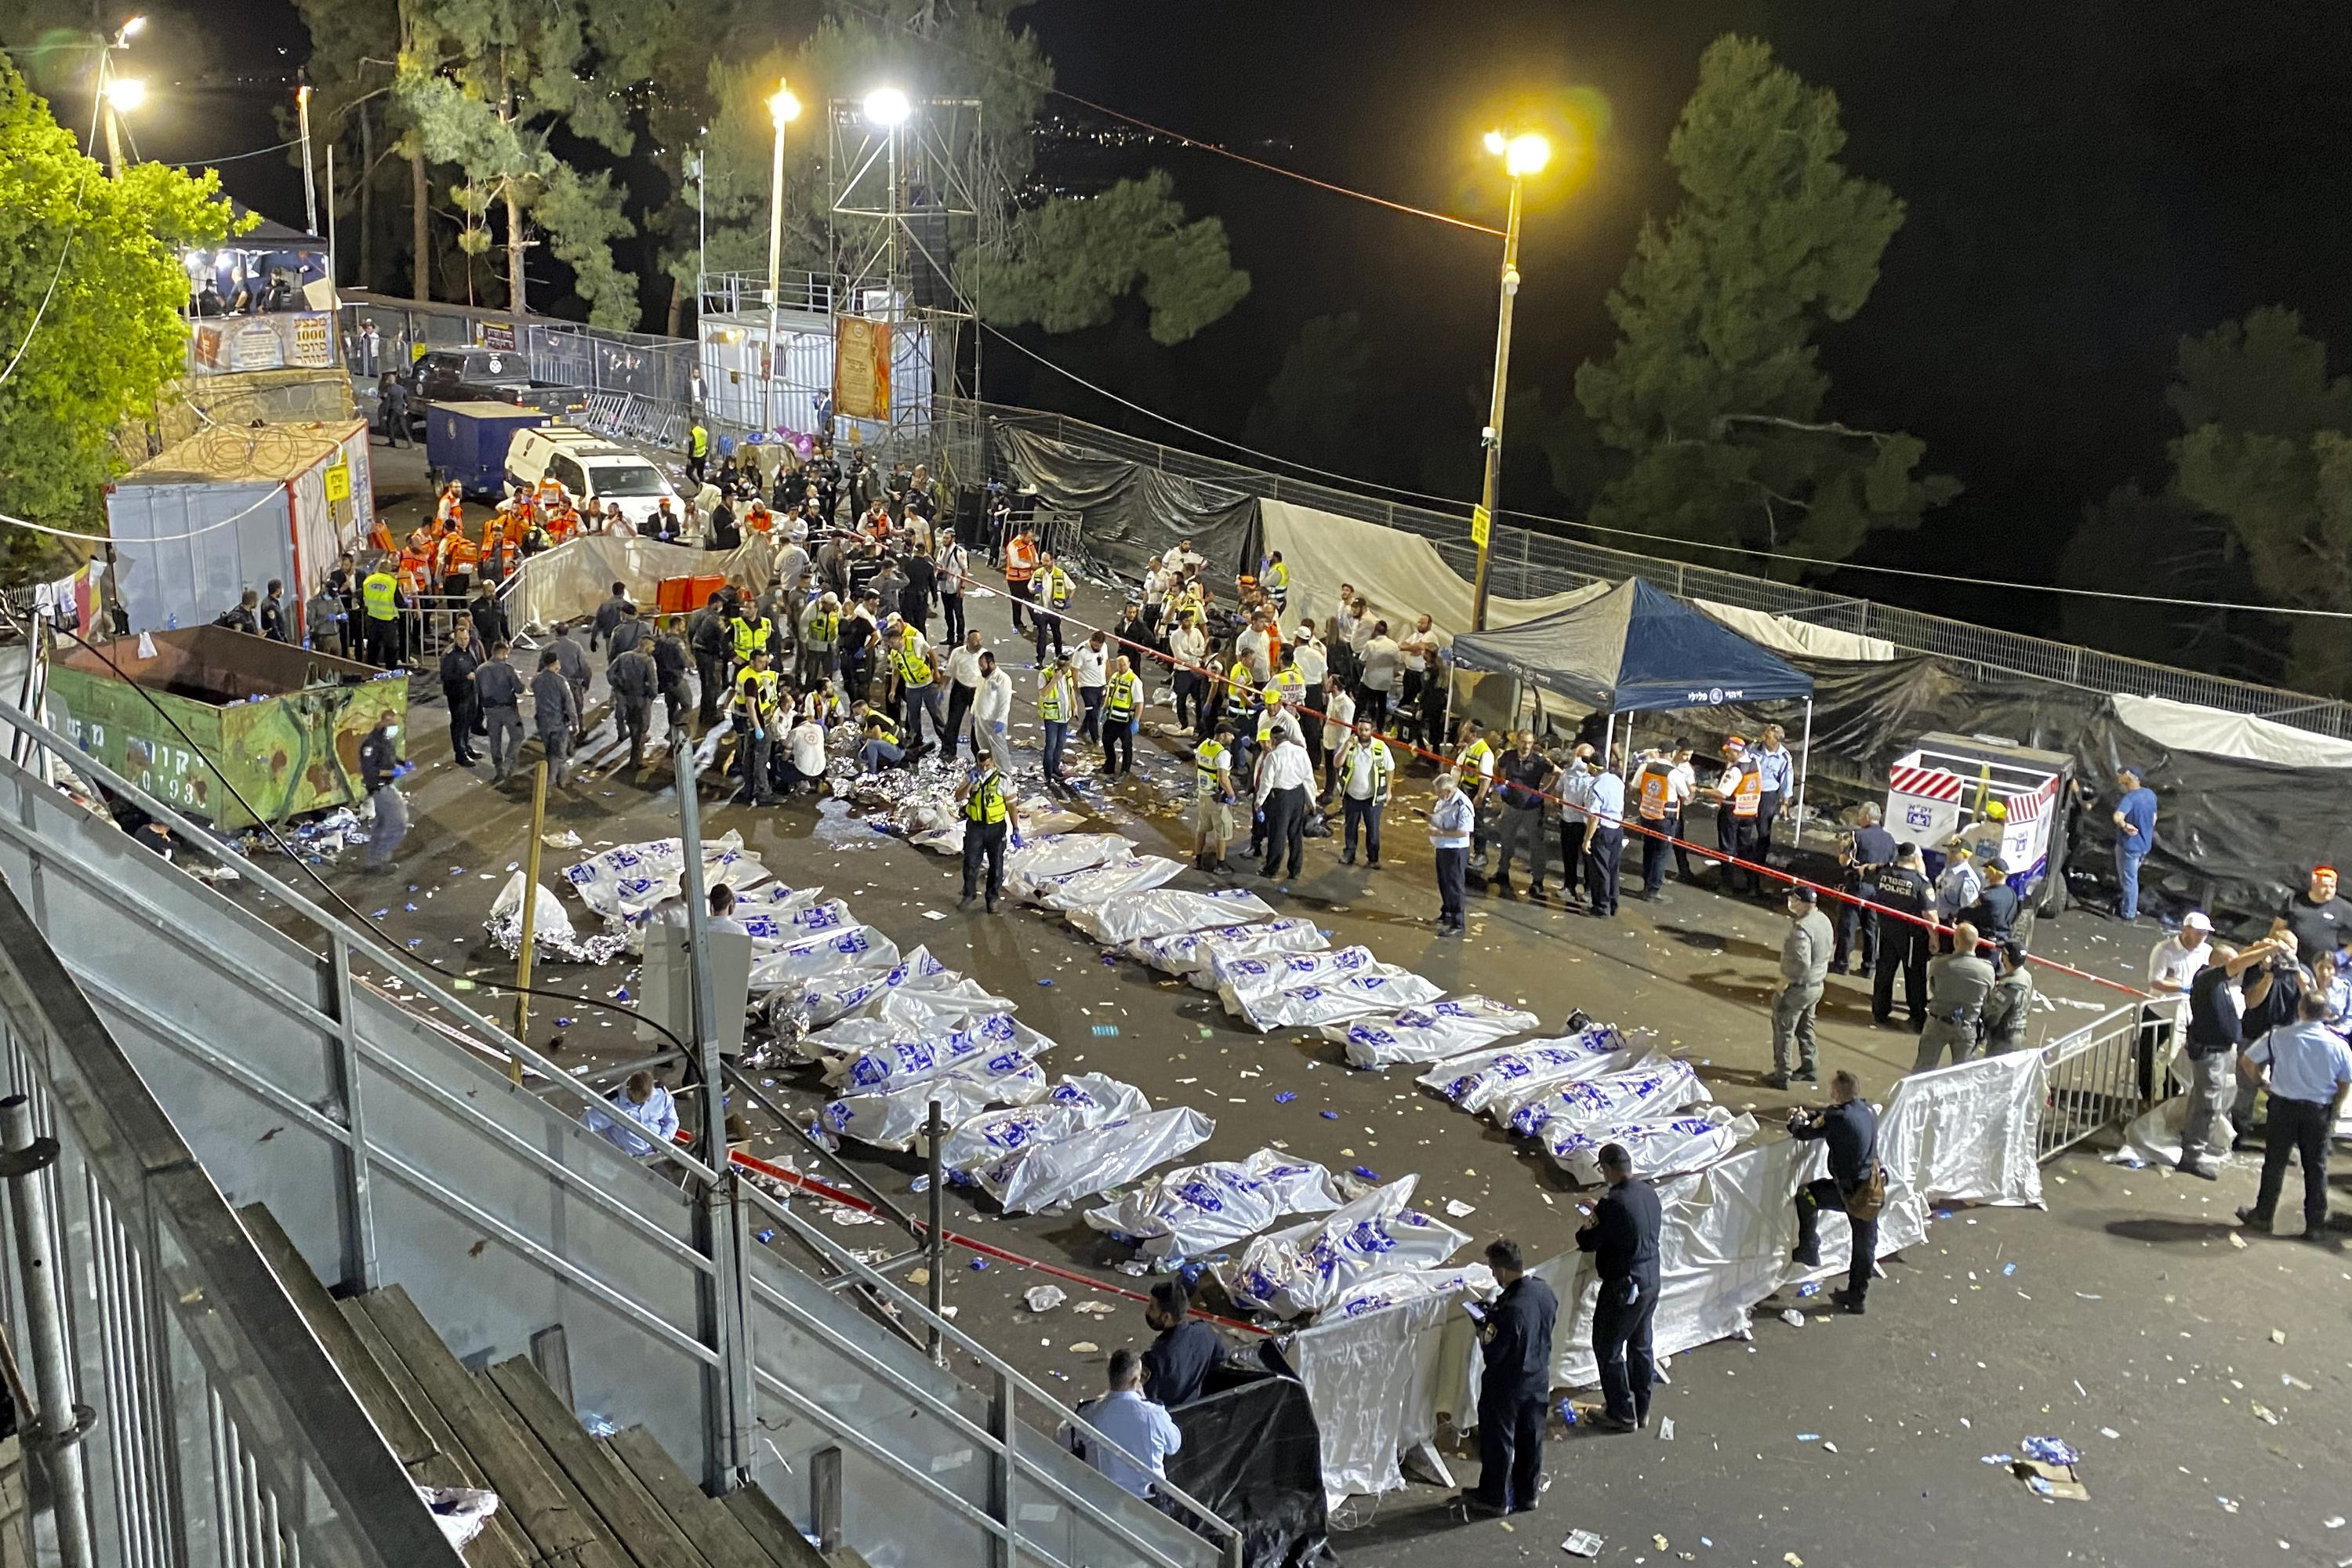 Religious festival stampede in Israel kills 44, hurts dozens – The Associated Press